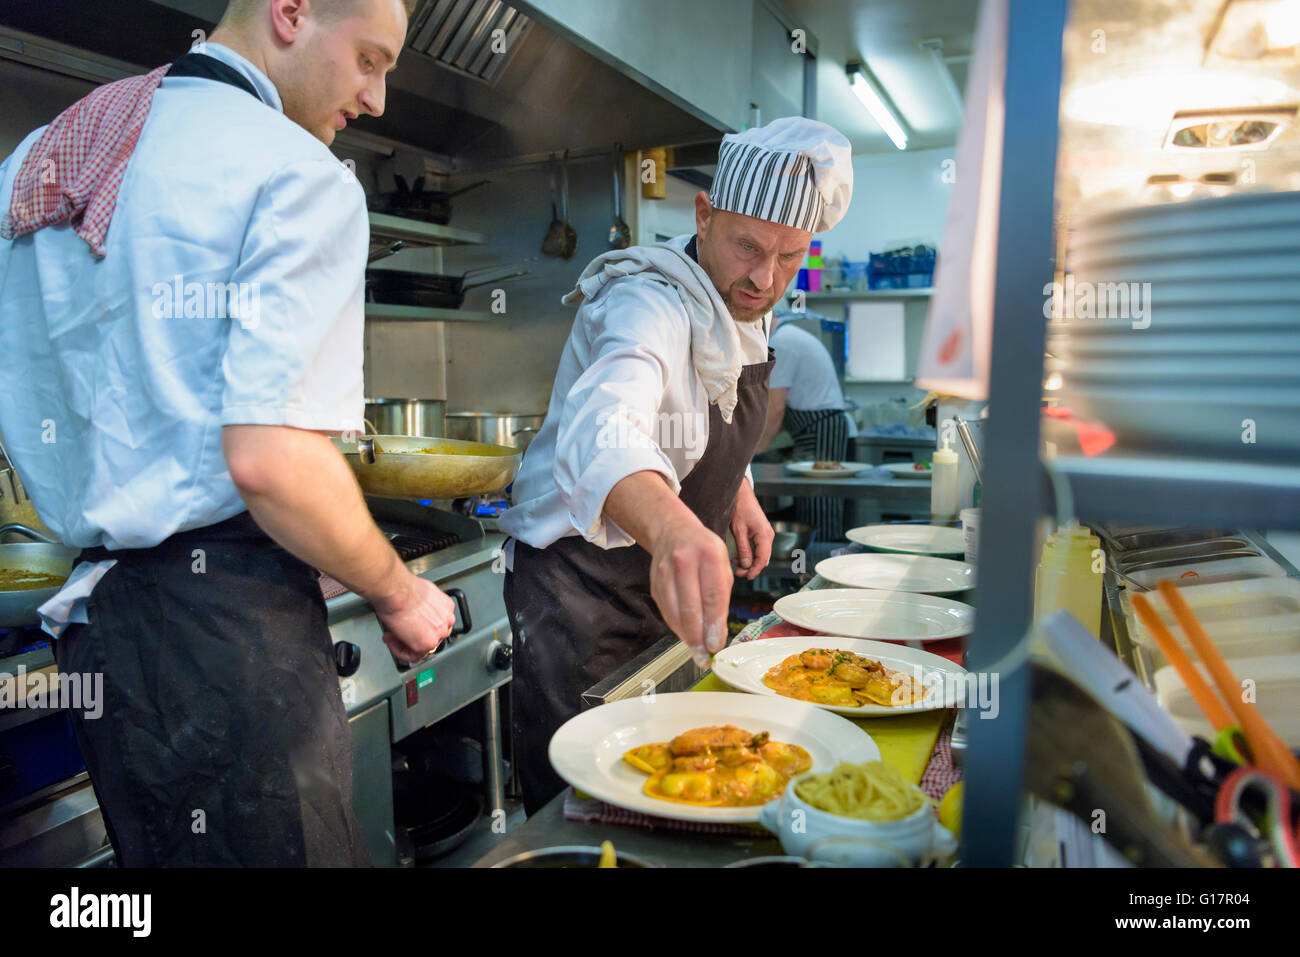 Chefs plating up lobster ravioli in traditional Italian restaurant kitchen - Stock Image